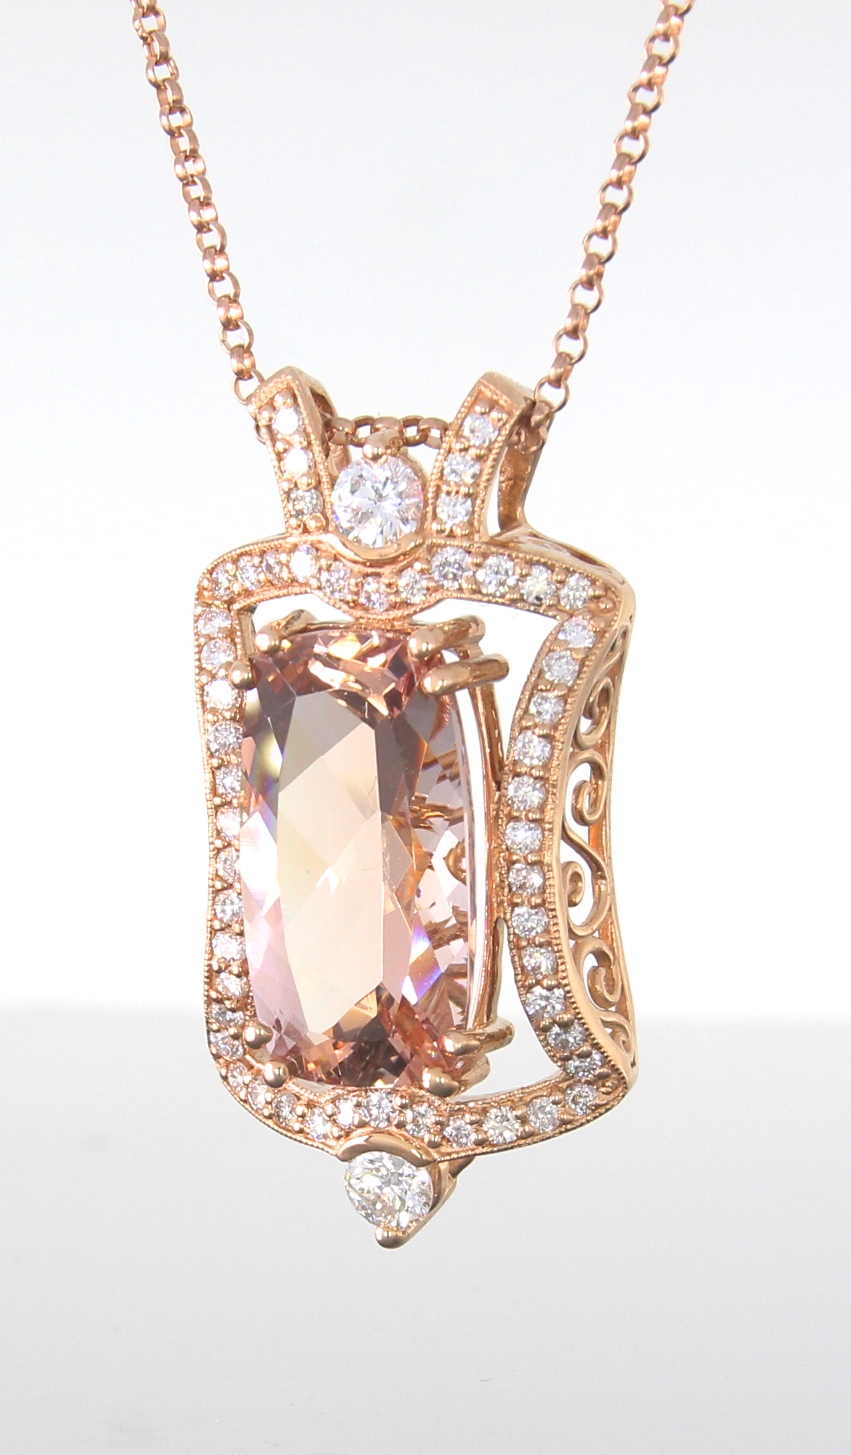 side-view-unique-mornganite-rose-gold-pendant-craft-revival-jewelry-store-grand-rapids.jpg